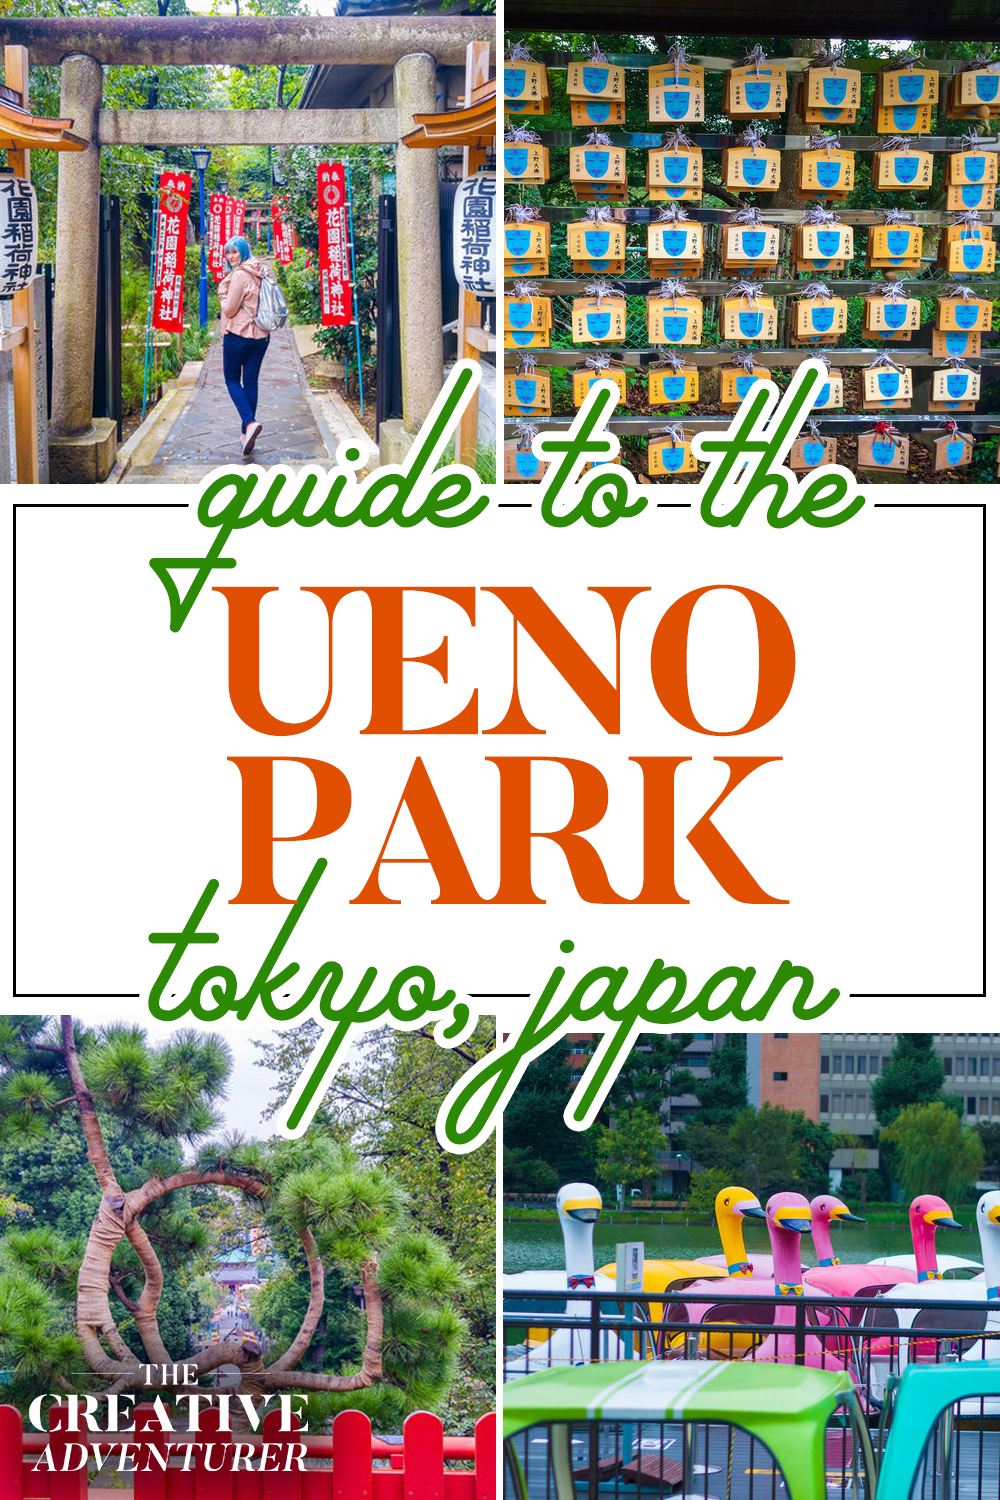 A GUIDE TO UENO PARK TOKYO